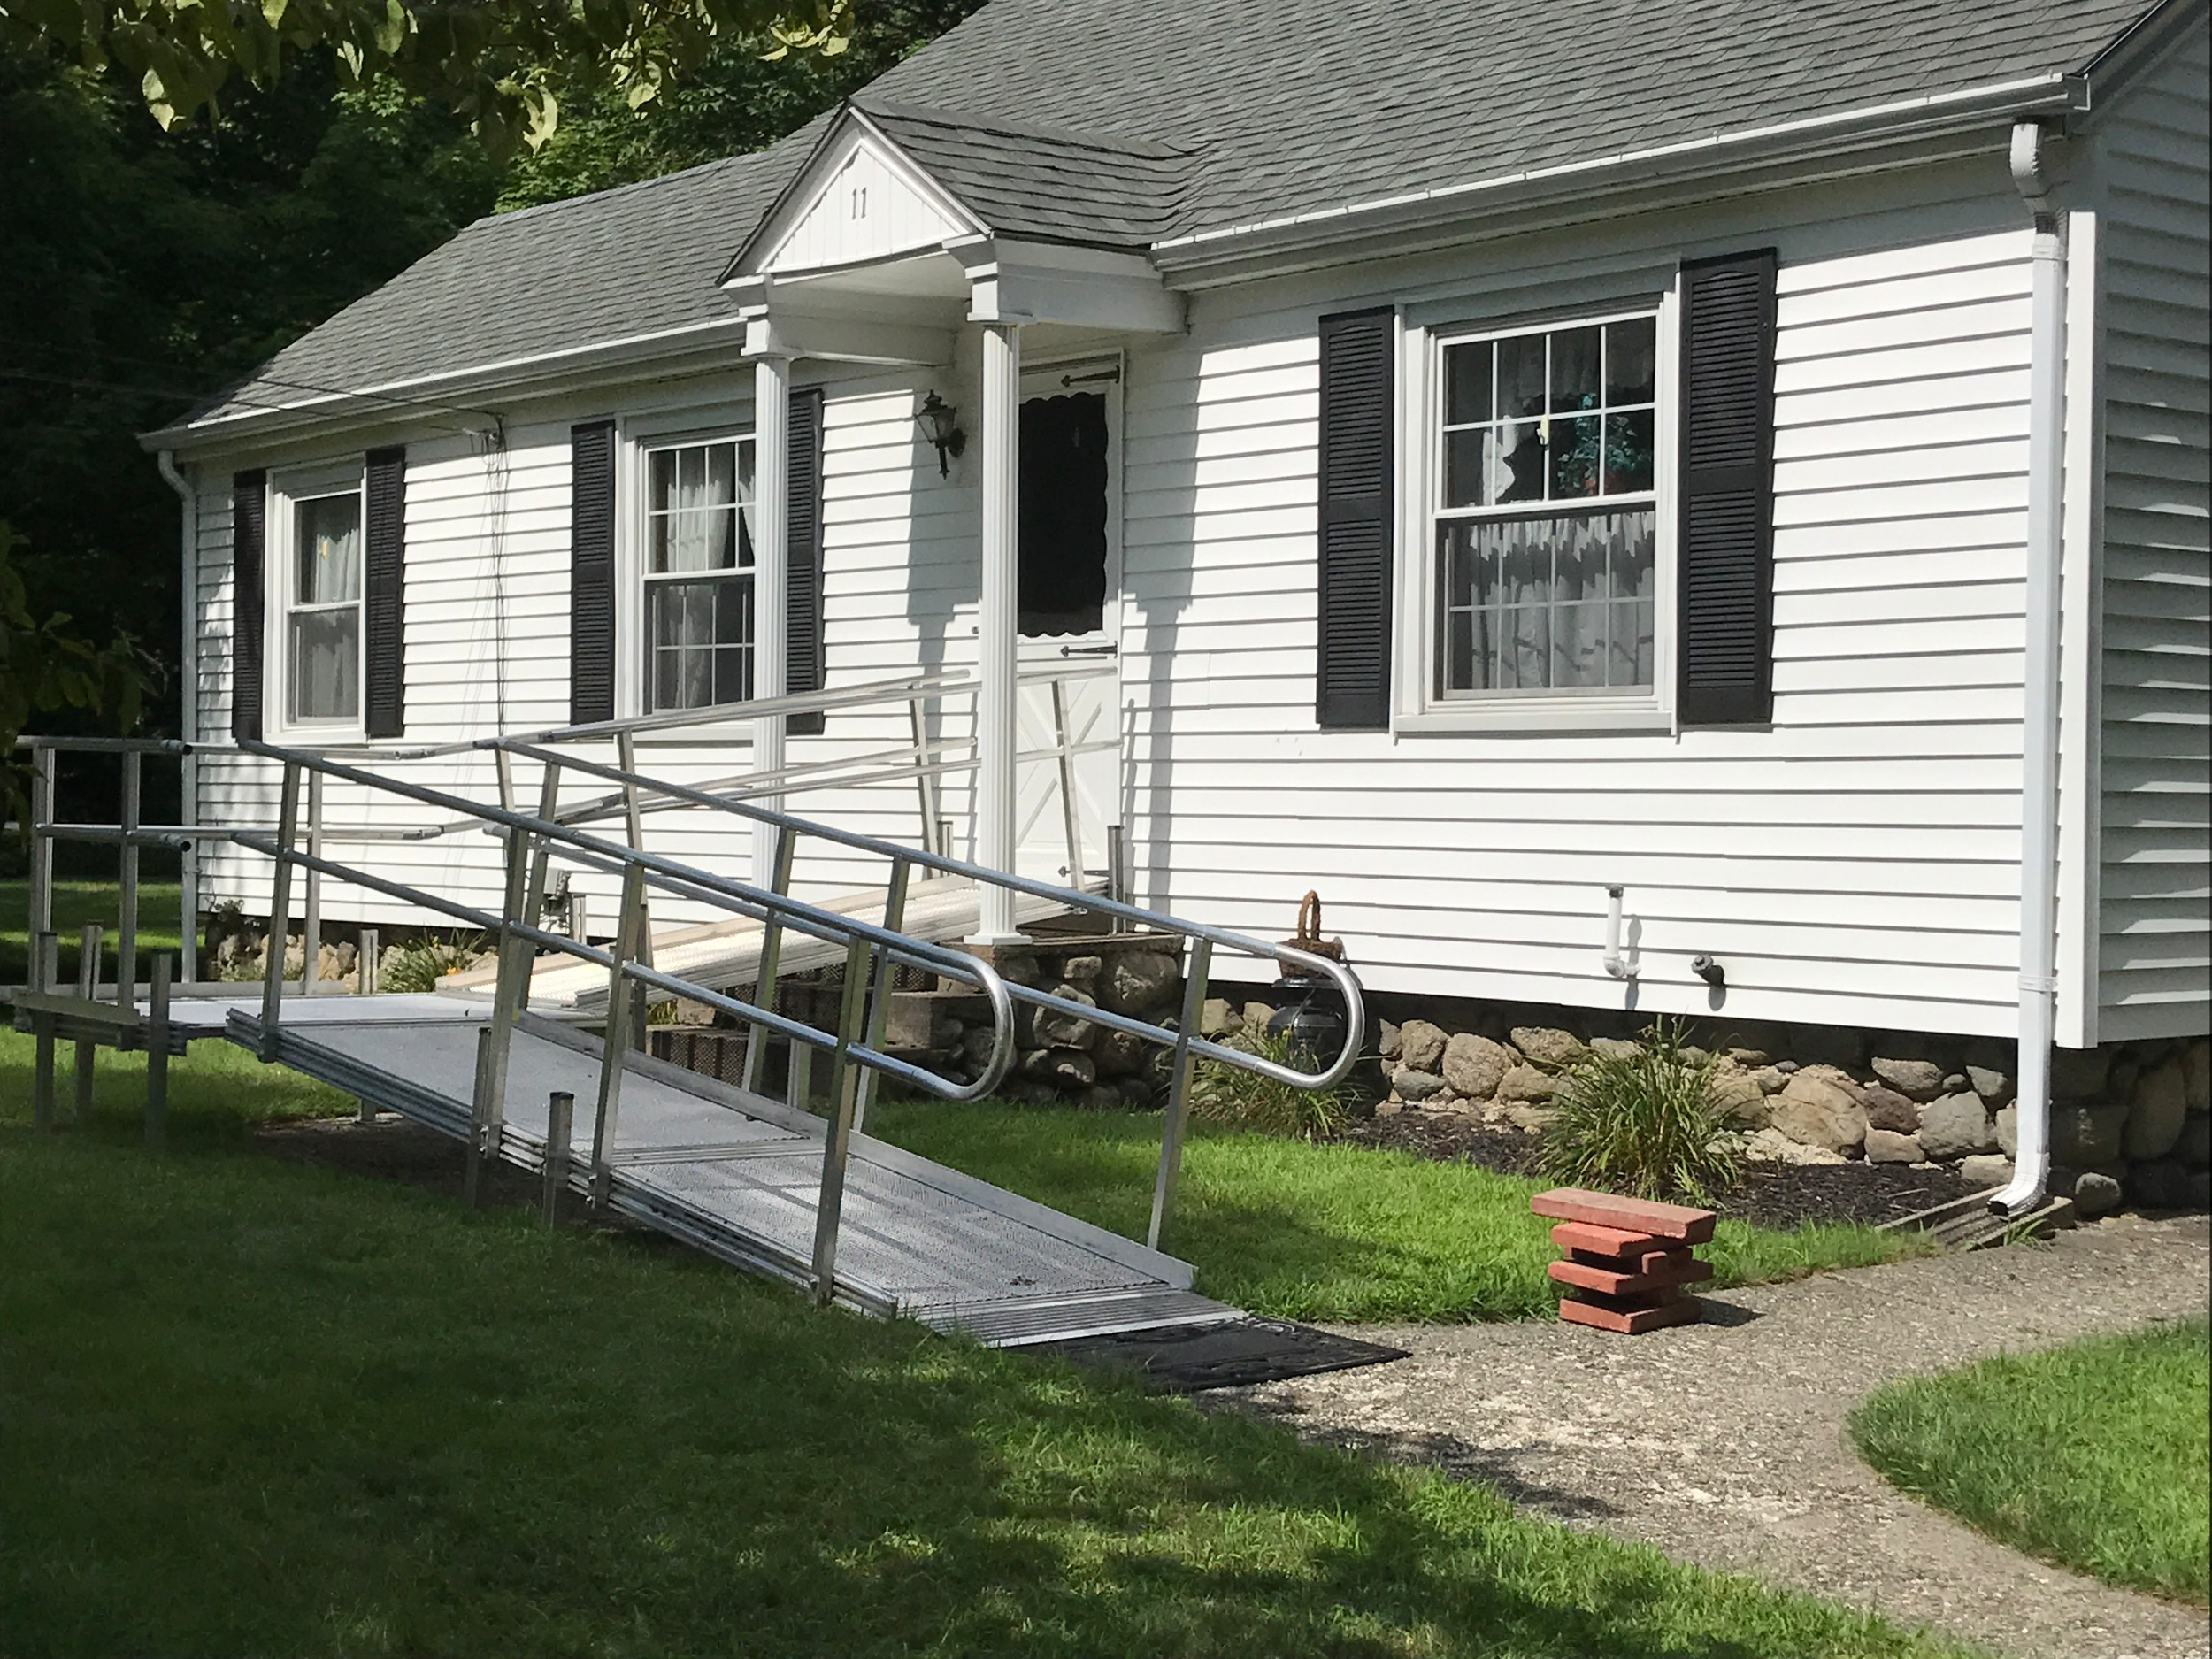 Rehoboth Veterans Officer comes through with a ramp for a Veterans home